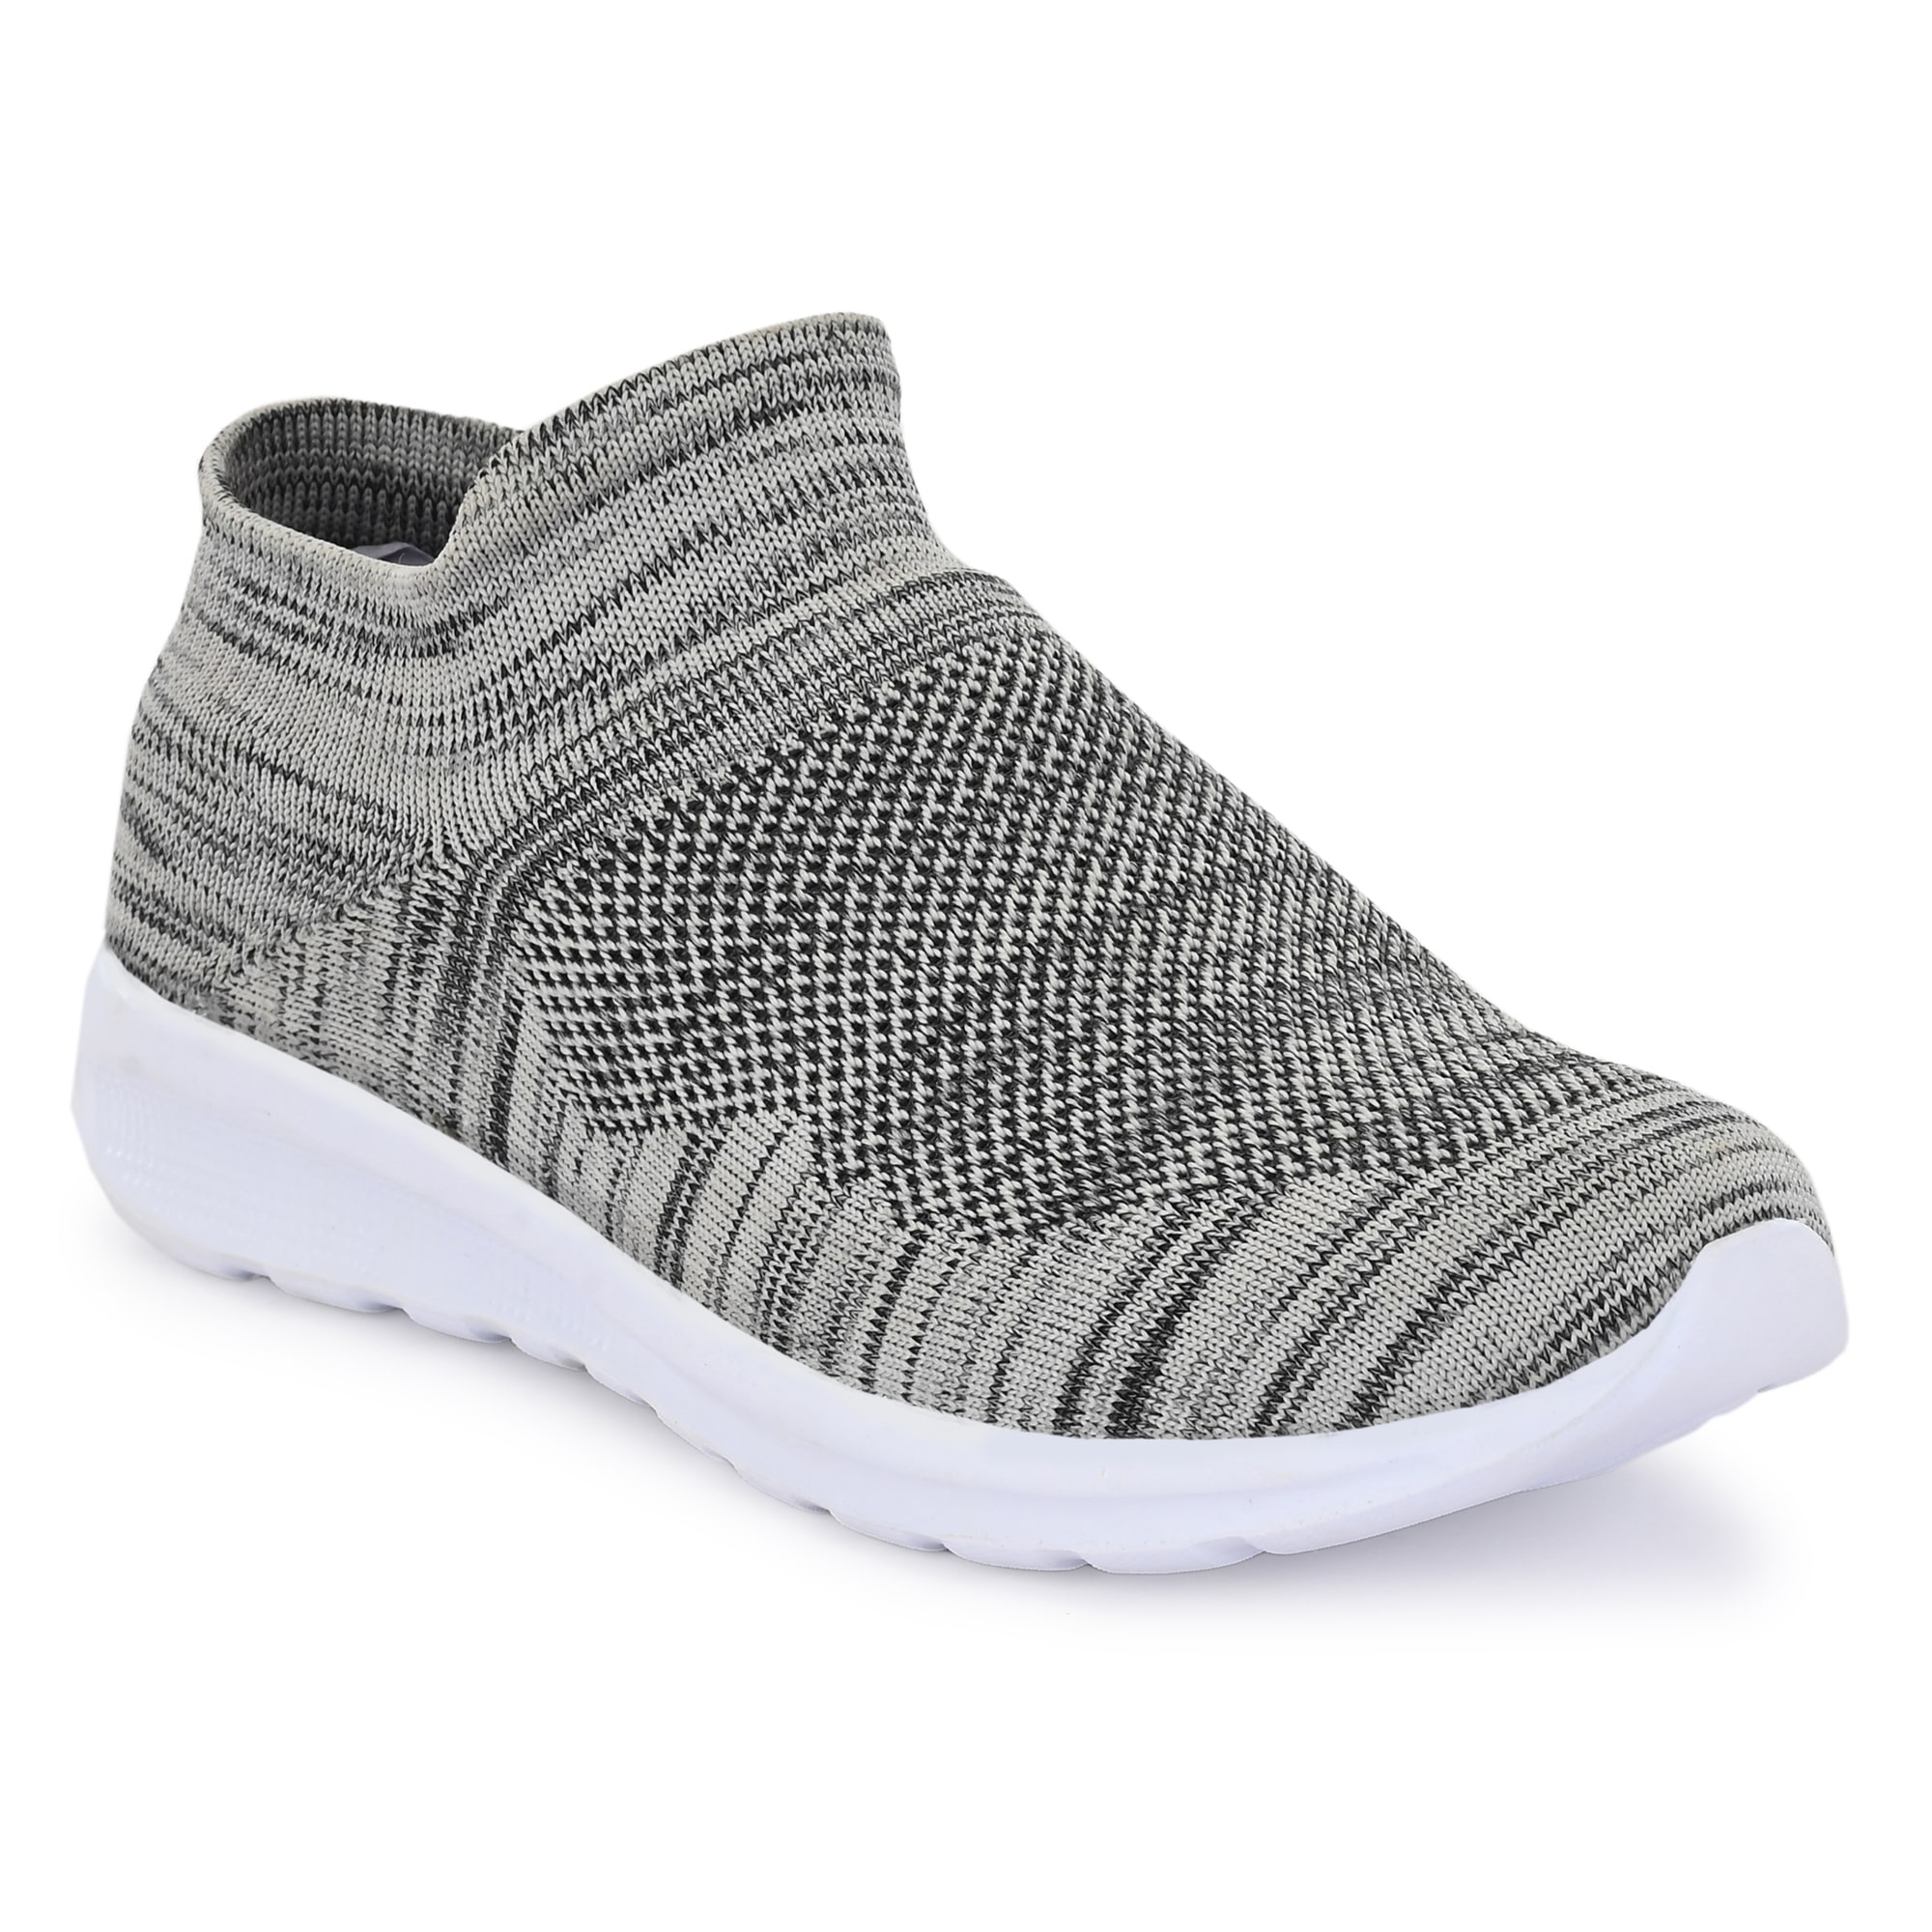 RAYSFIELD Men Running Shoes